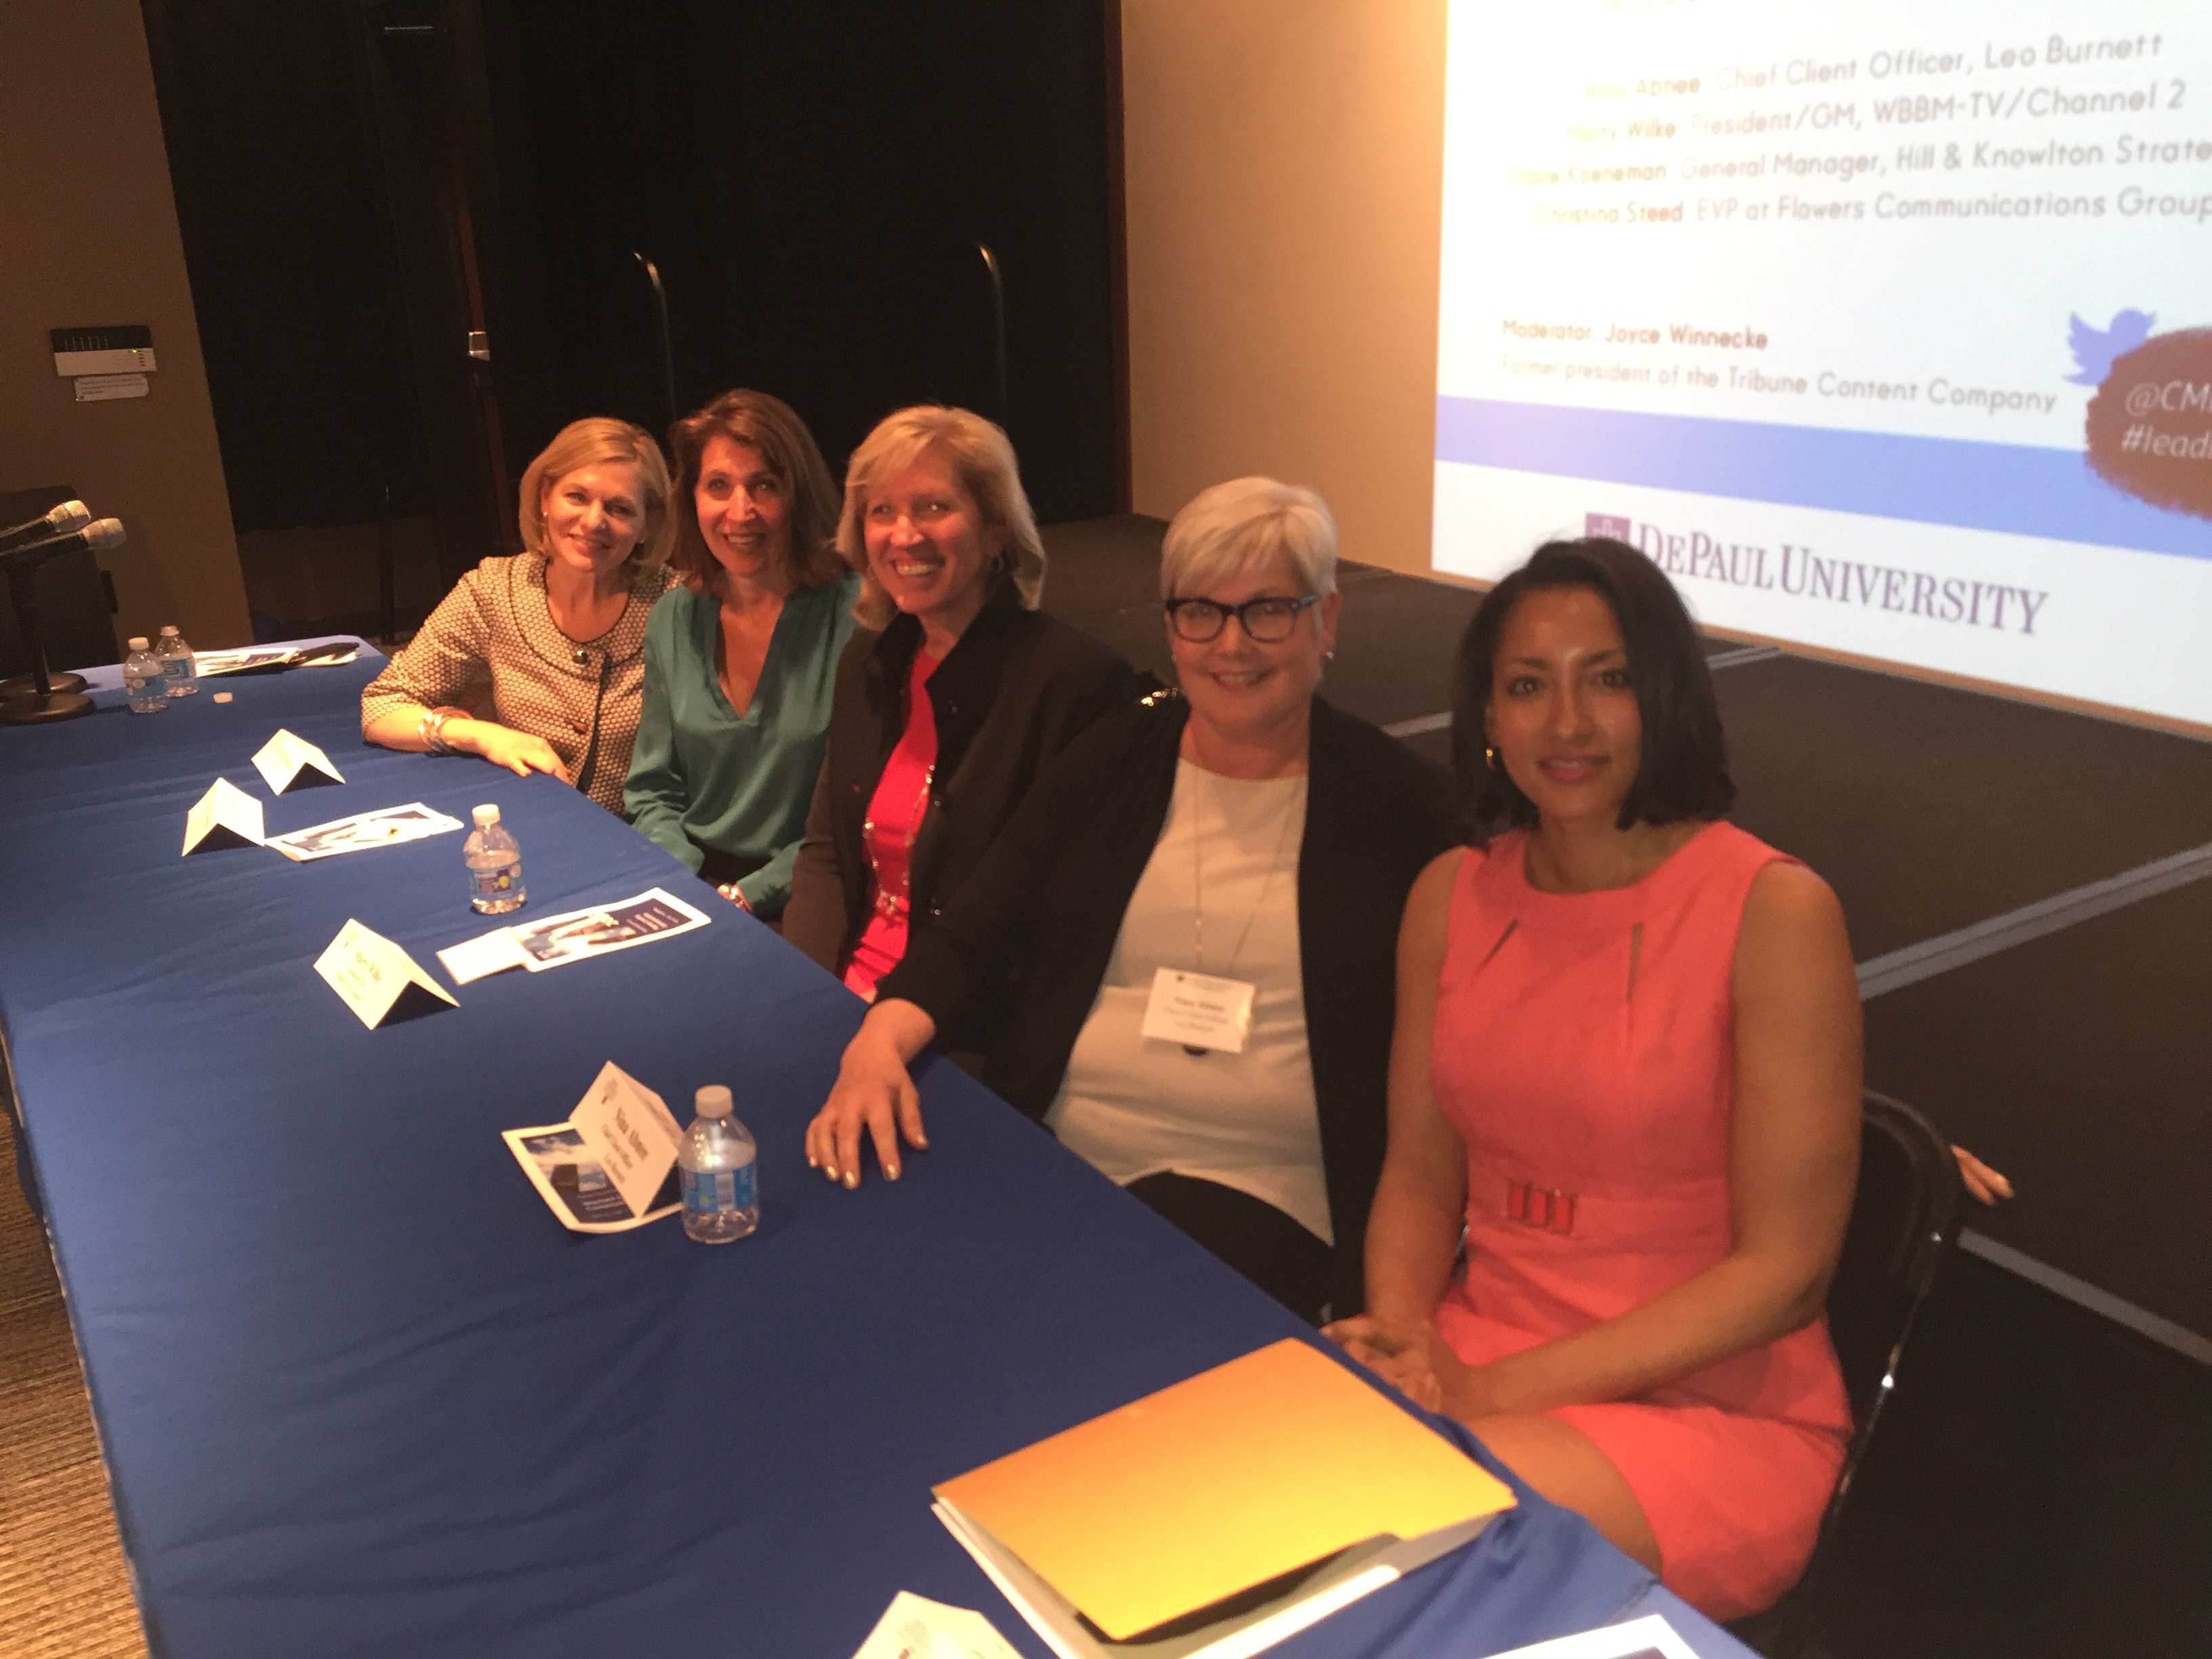 DePaul University panel Women Leading Communication